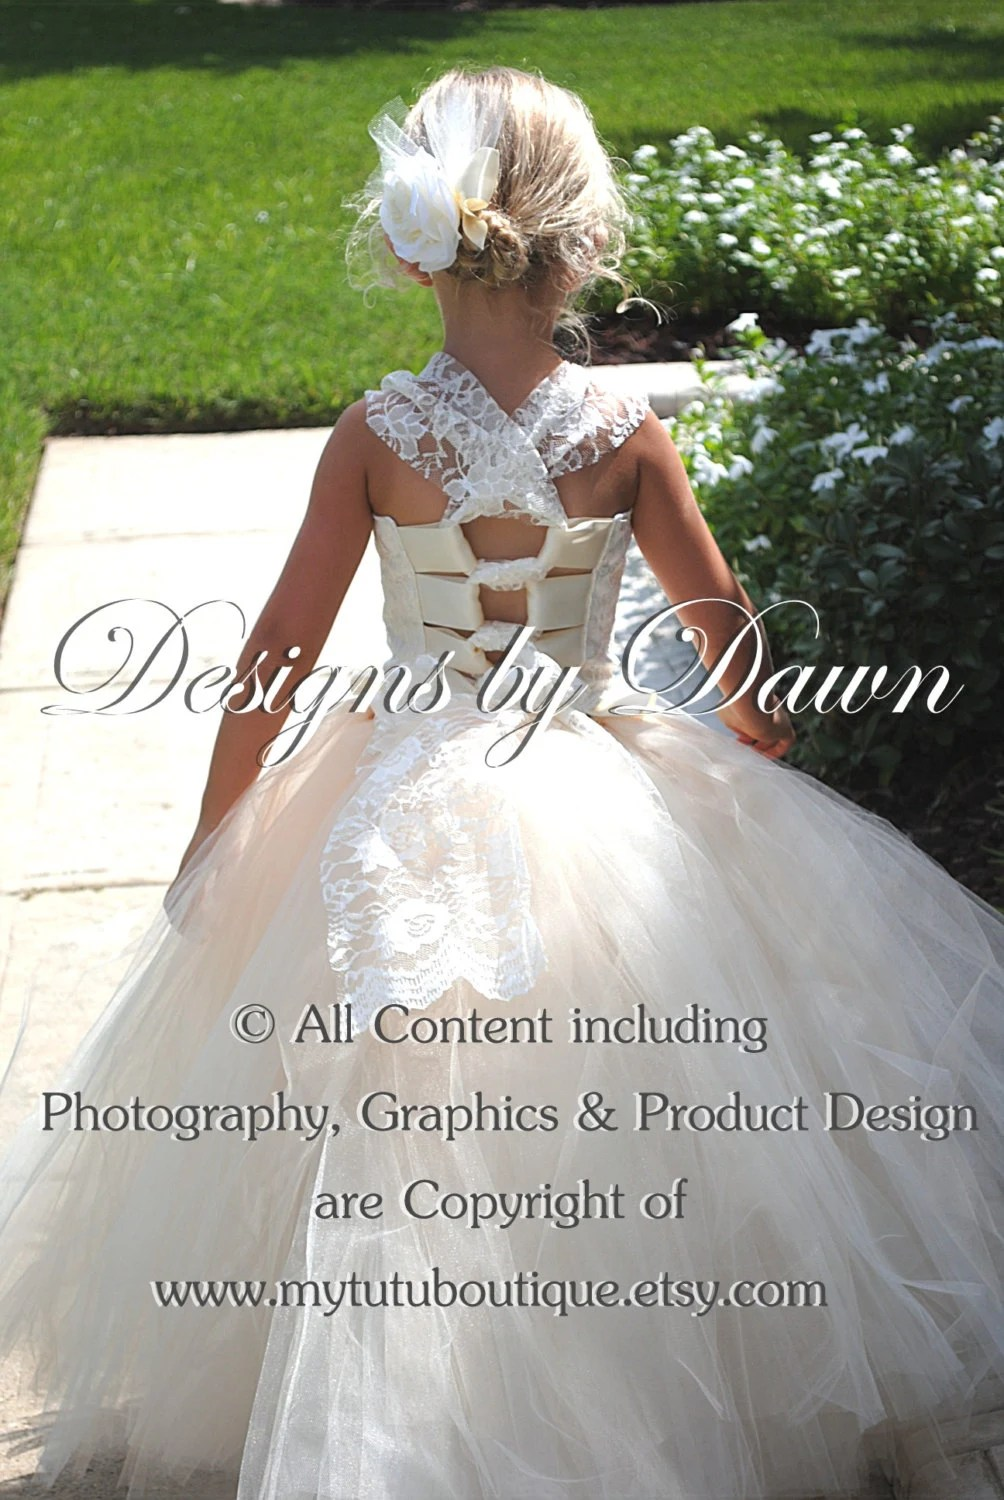 This is a private order listing for abbeycrow – October 1 – Ivory flower girl dress with lace by mytutuboutique